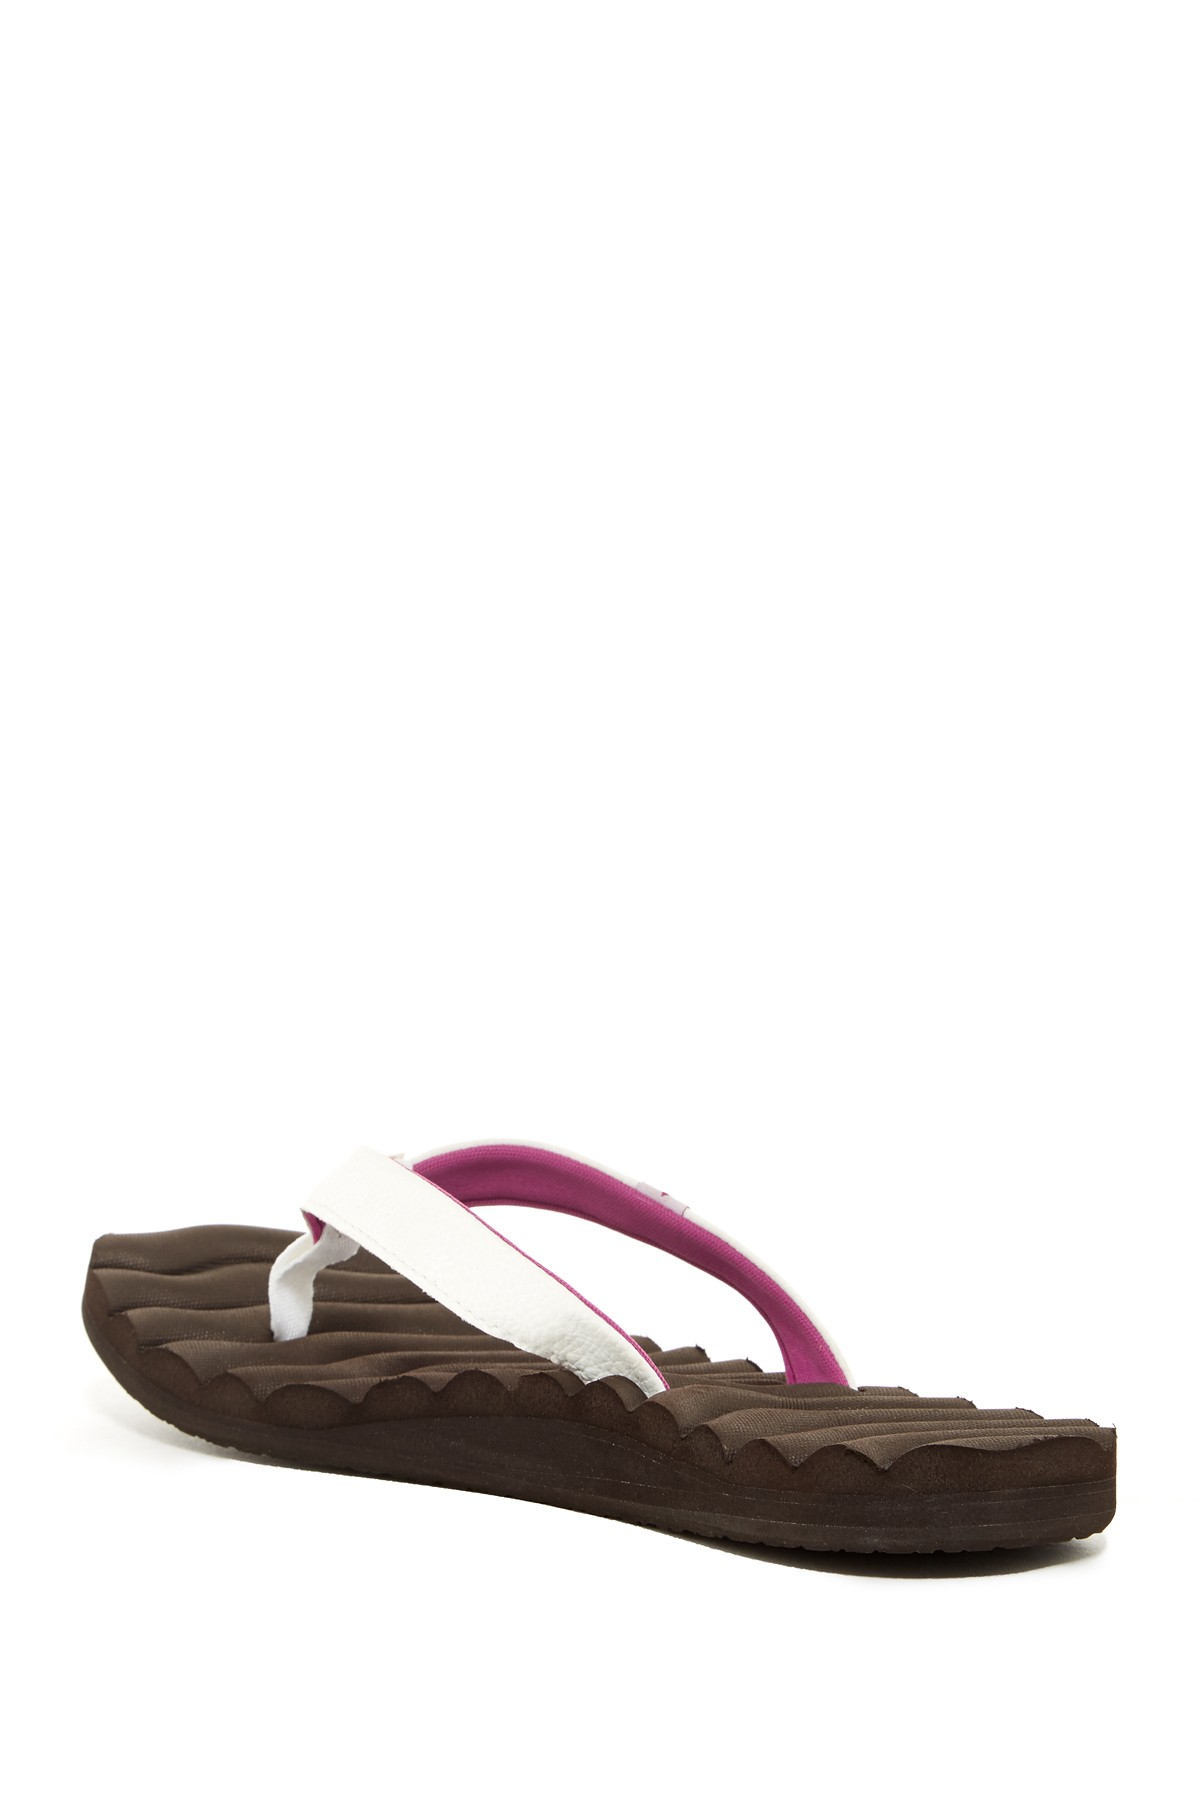 Reef River Shoes Uk